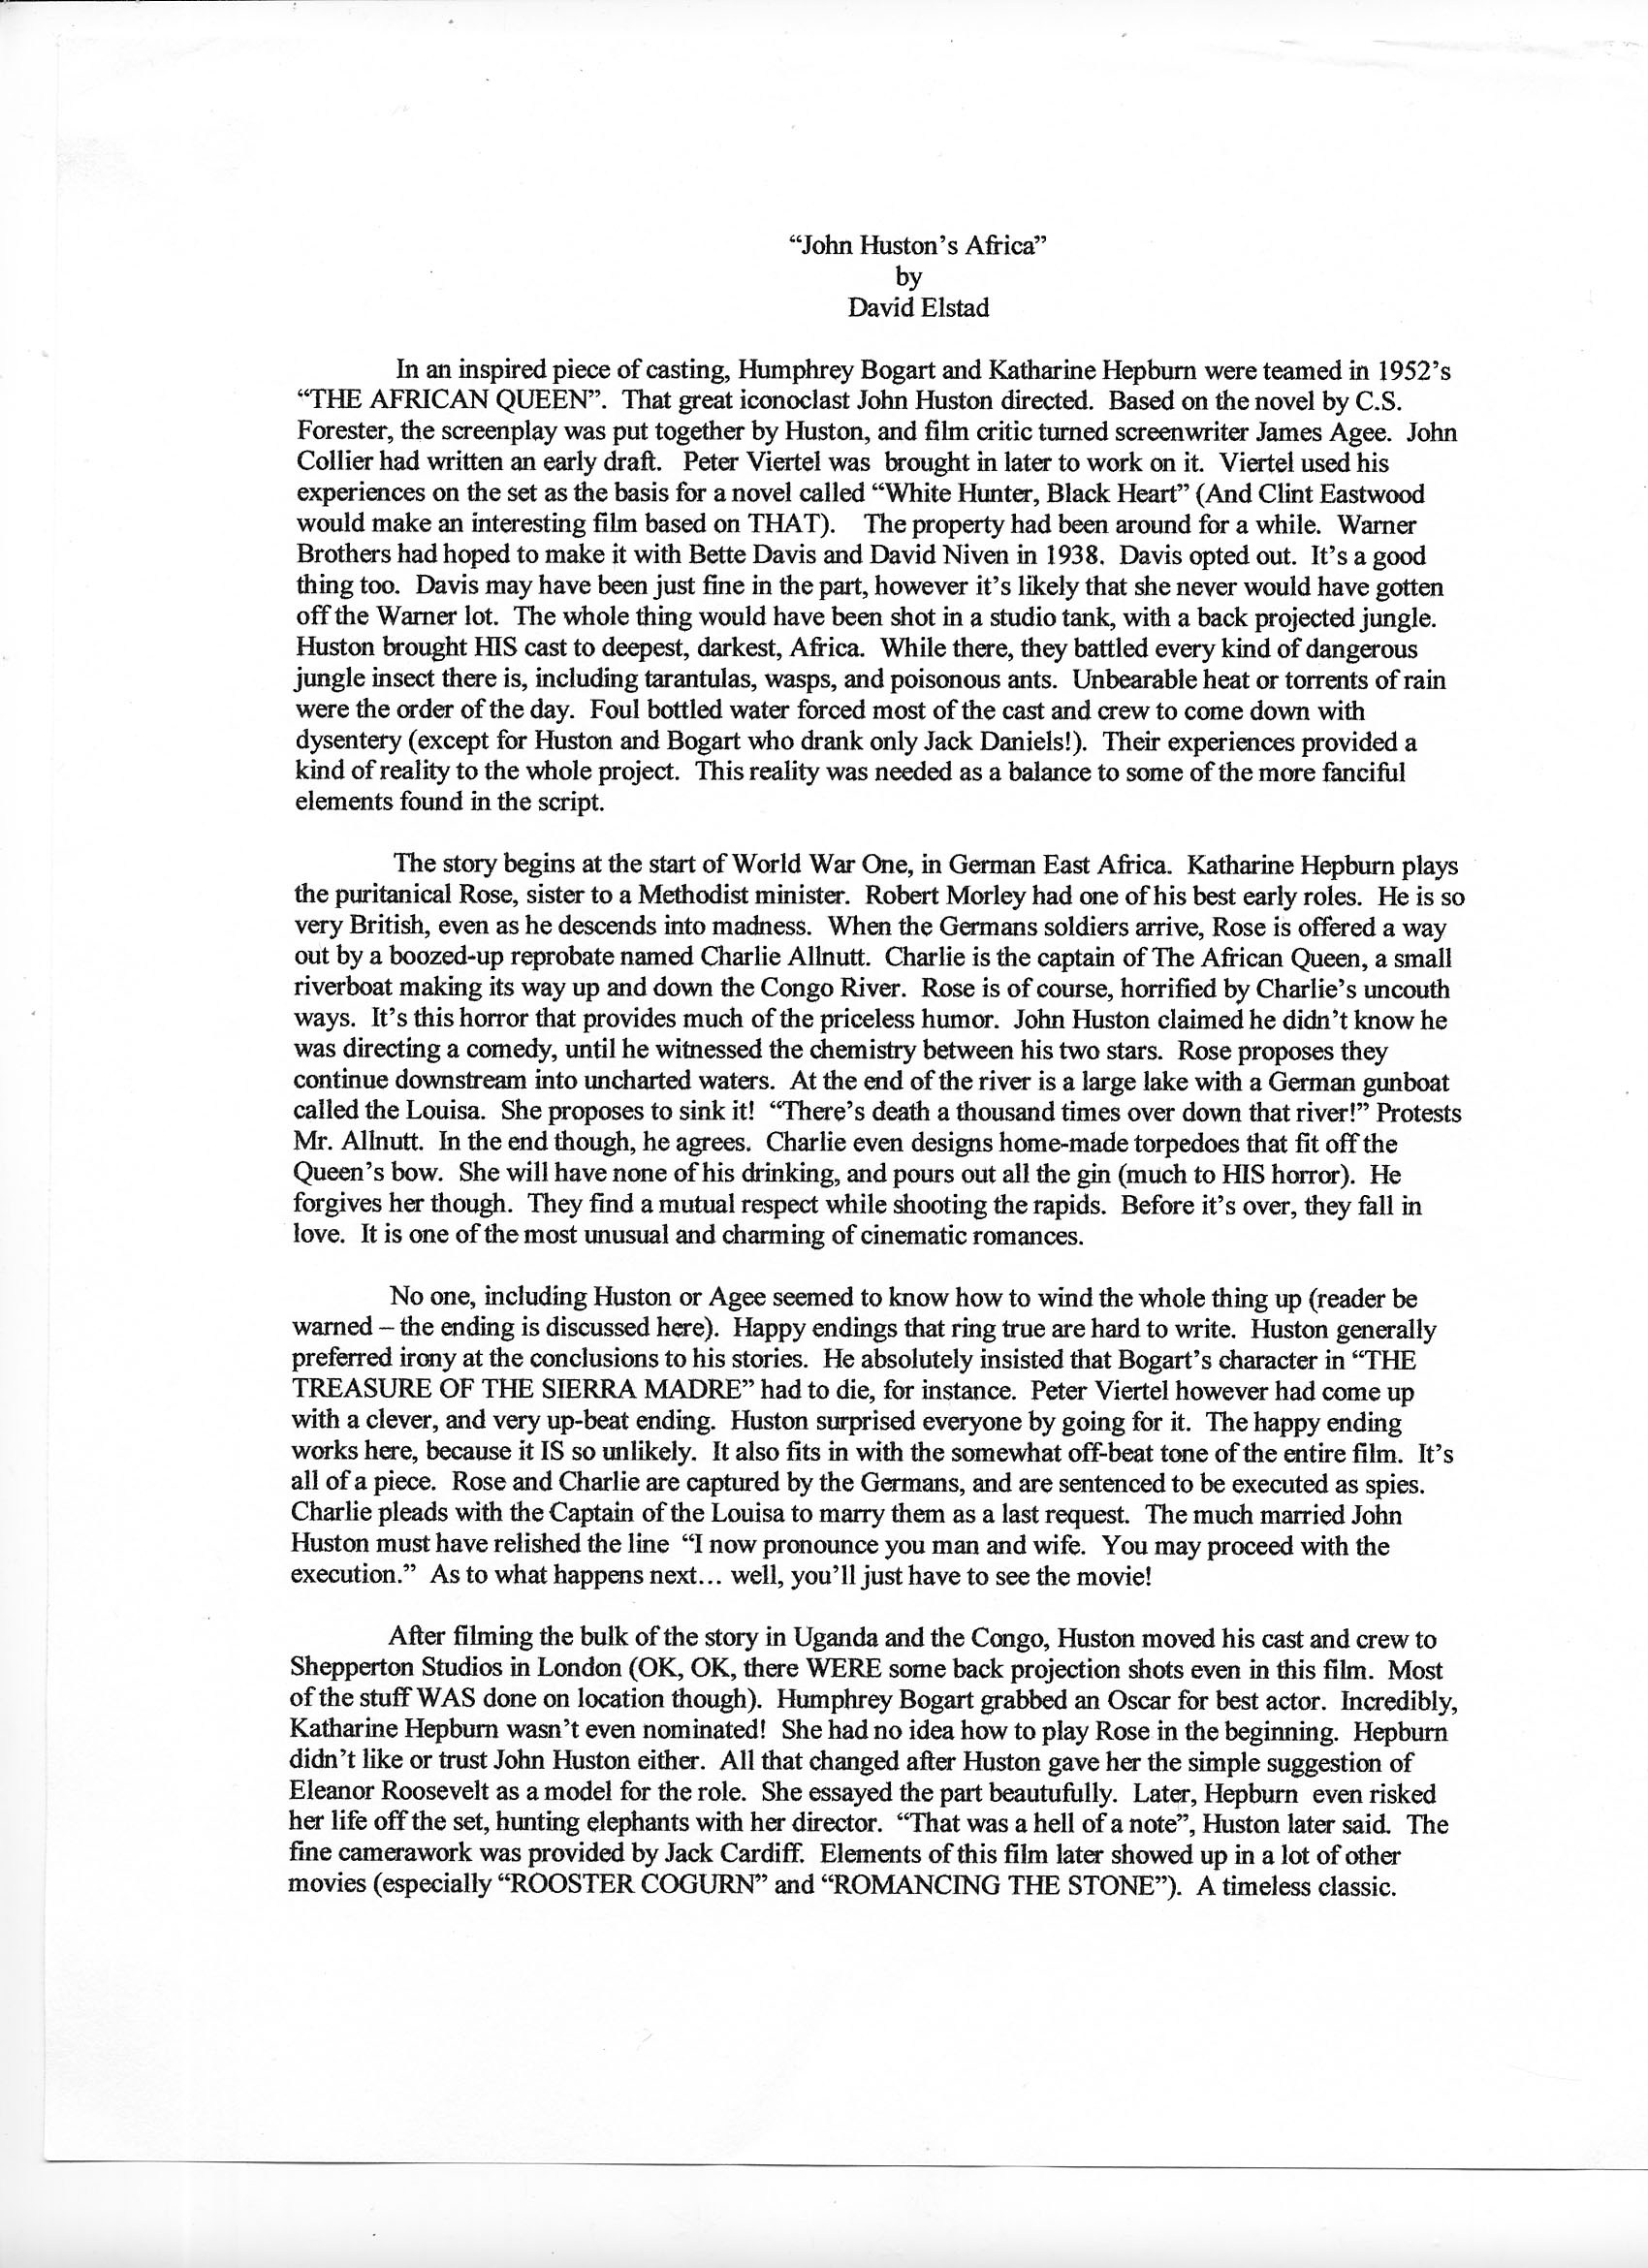 007 Character Essay Example Wondrous Introduction Lord Of The Flies Plans Sketch Rubric Full